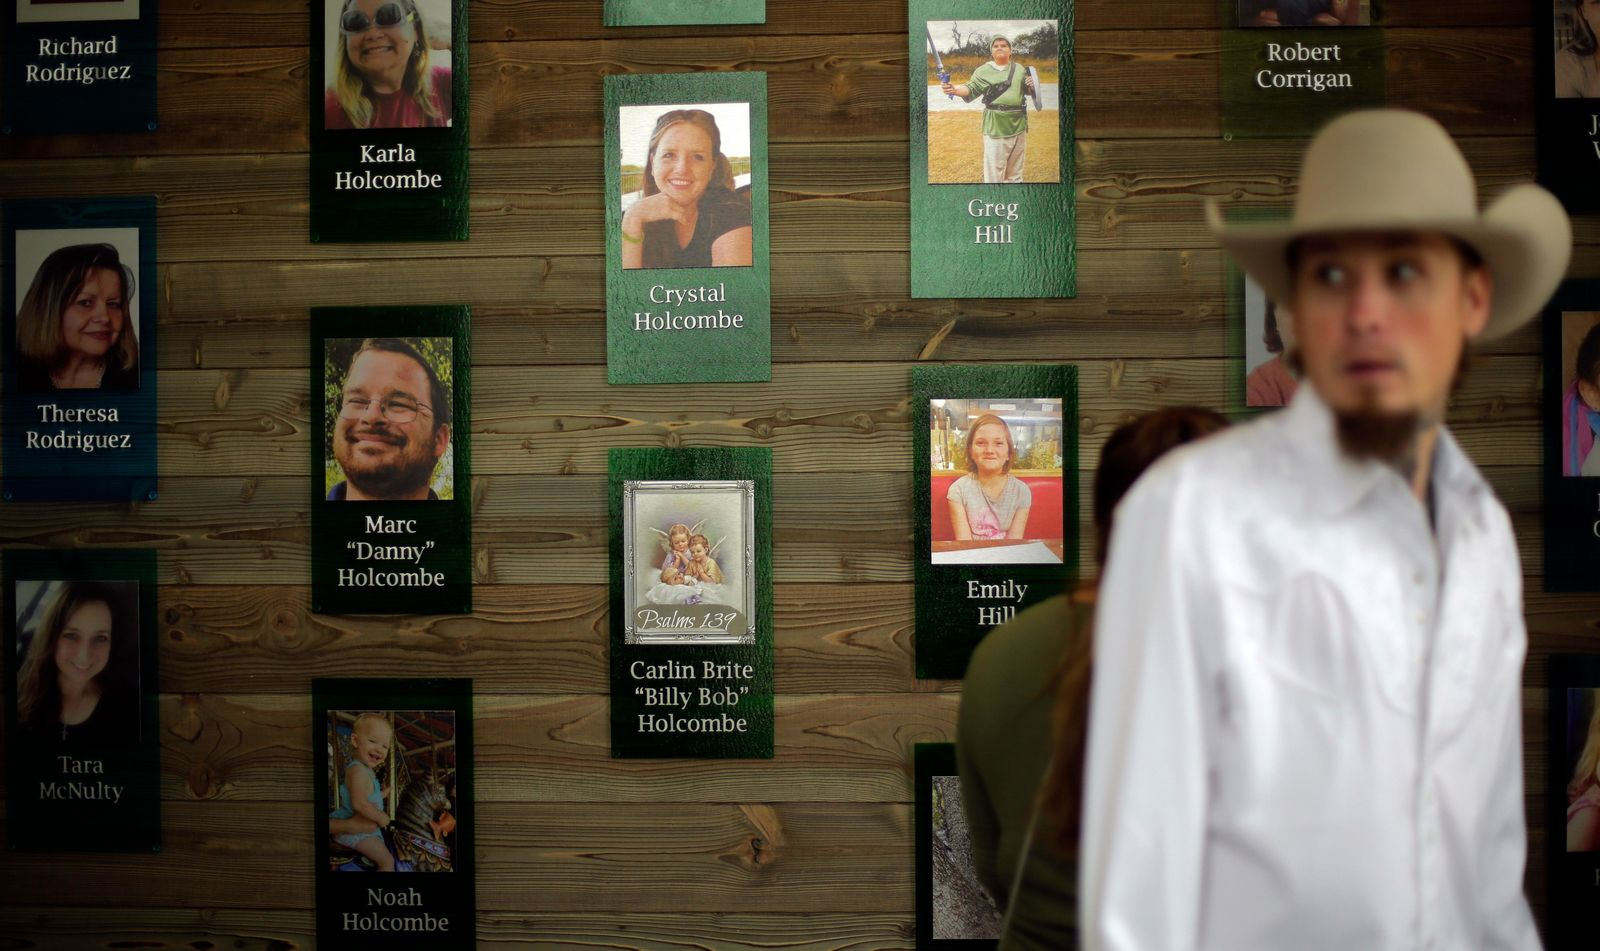 Churchgoers pass a memorial wall following a dedication ceremony for a new sanctuary and memorial room at the First Baptist Church in Sutherland Springs, Texas, Sunday, May 19, 2019. In 2017 a gunman opened fire at the church and killed more than two dozen congregants. (AP Photo/Eric Gay)